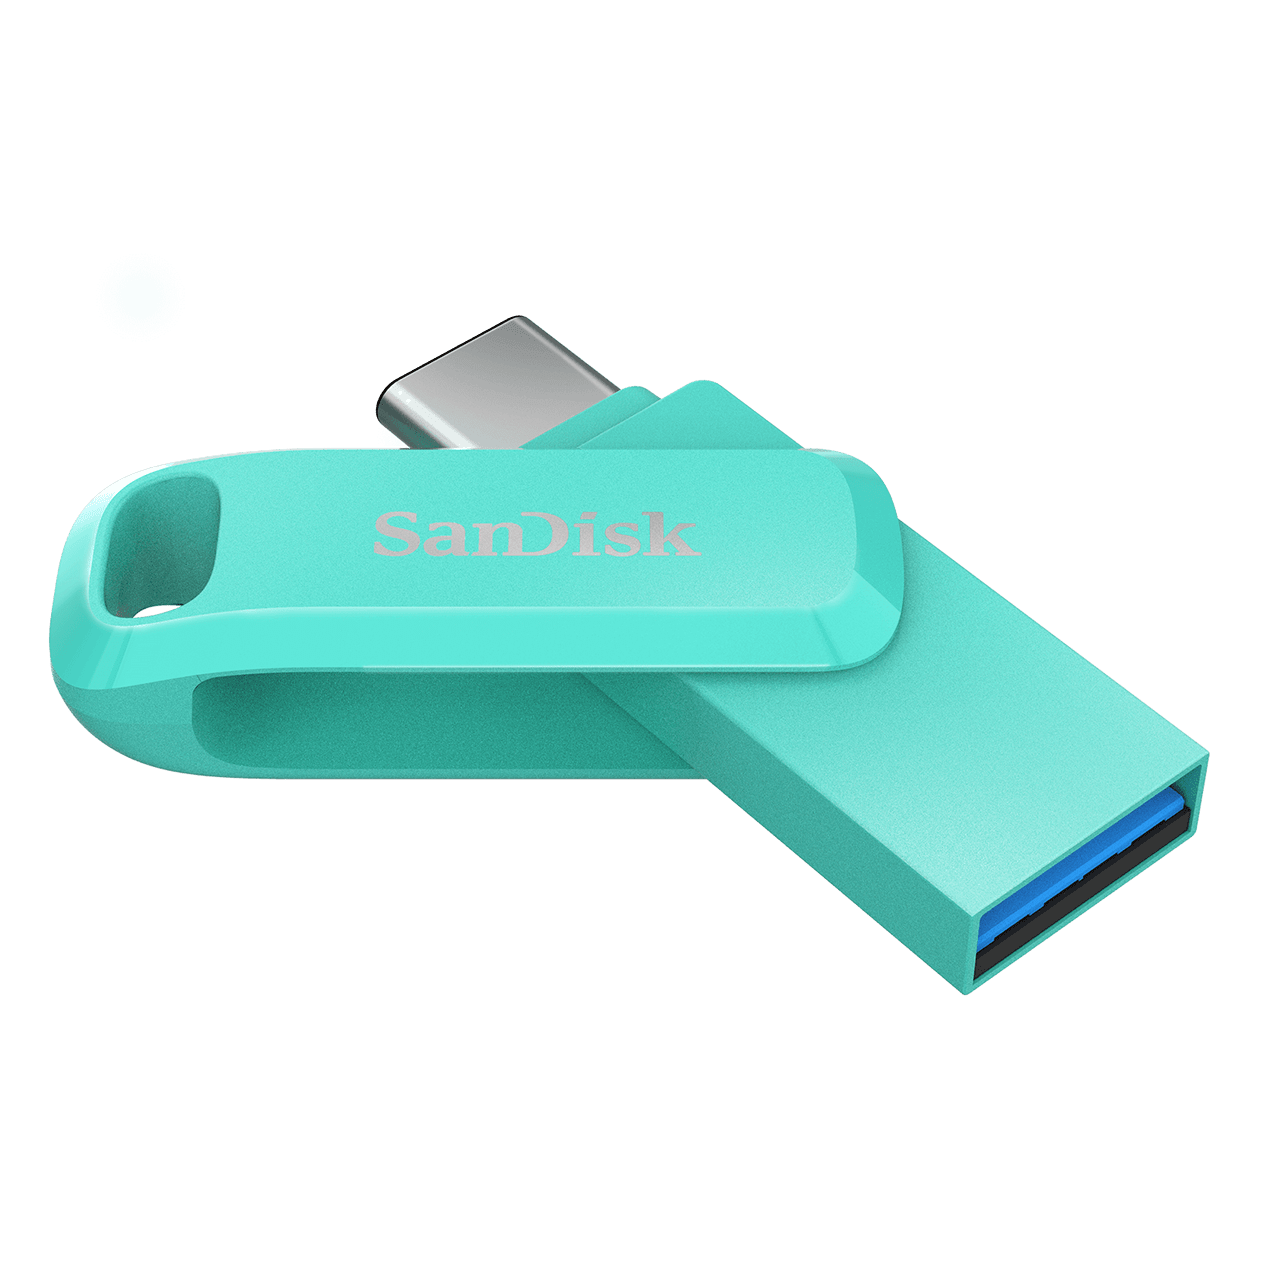 Sandisk OTG Ultra Dual Drive Go USB Type-C with 150MB/s Read, Plug and Play, Type-C Connection, USB 3.0, Swivel Design